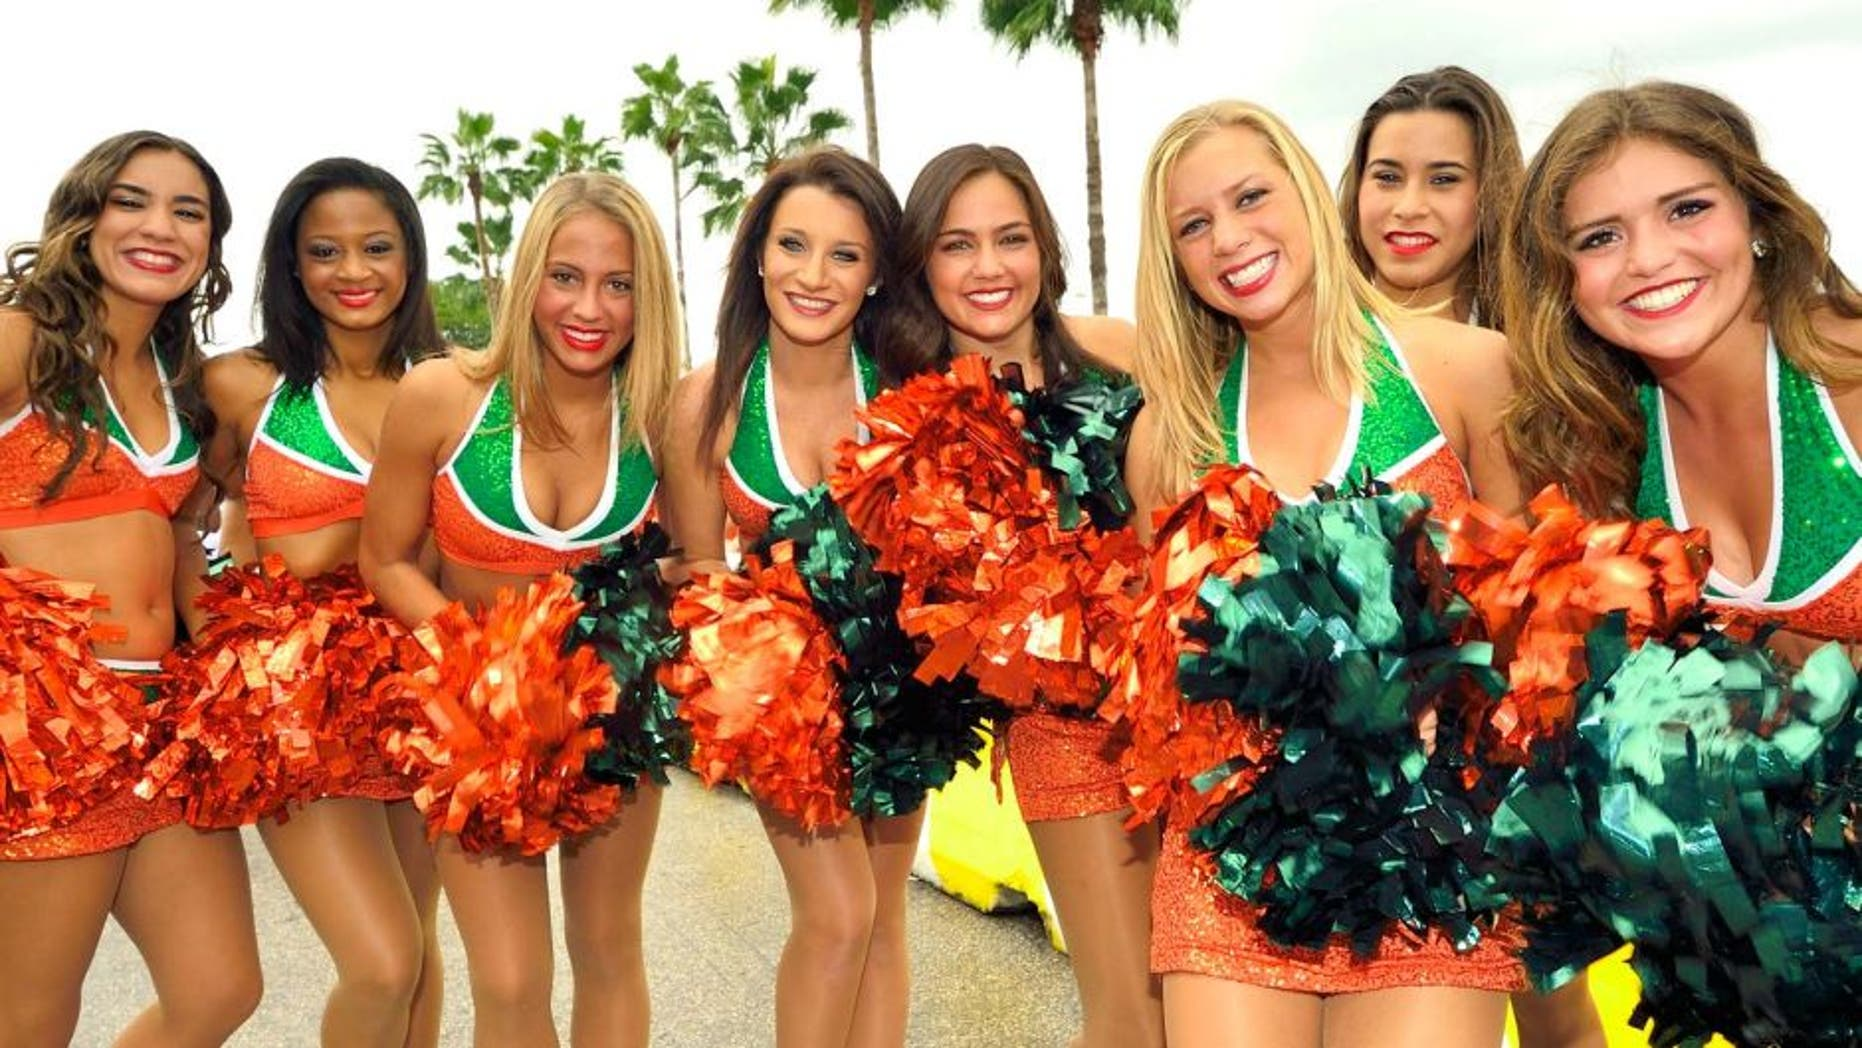 Oct 13, 2012; Miami, FL, USA; Miami Hurricanes cheerleaders are seen before a game between the North Carolina Tar Heels and the Miami Hurricanes at Sun Life Stadium. Mandatory Credit: Steve Mitchell-USA TODAY Sports